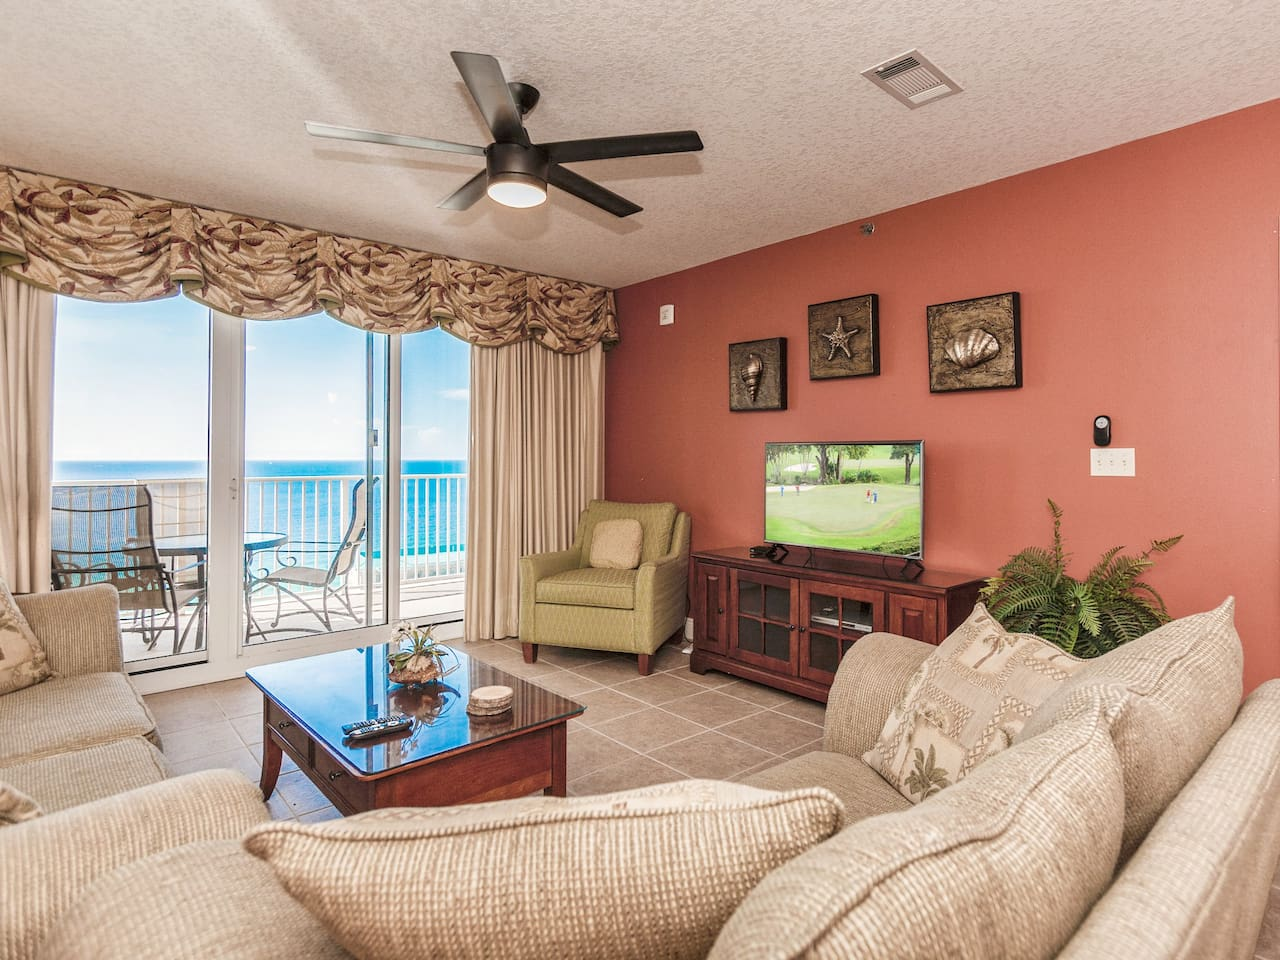 Welcome to Miramar Beach! Large glass doors provide sweeping views in the living room.